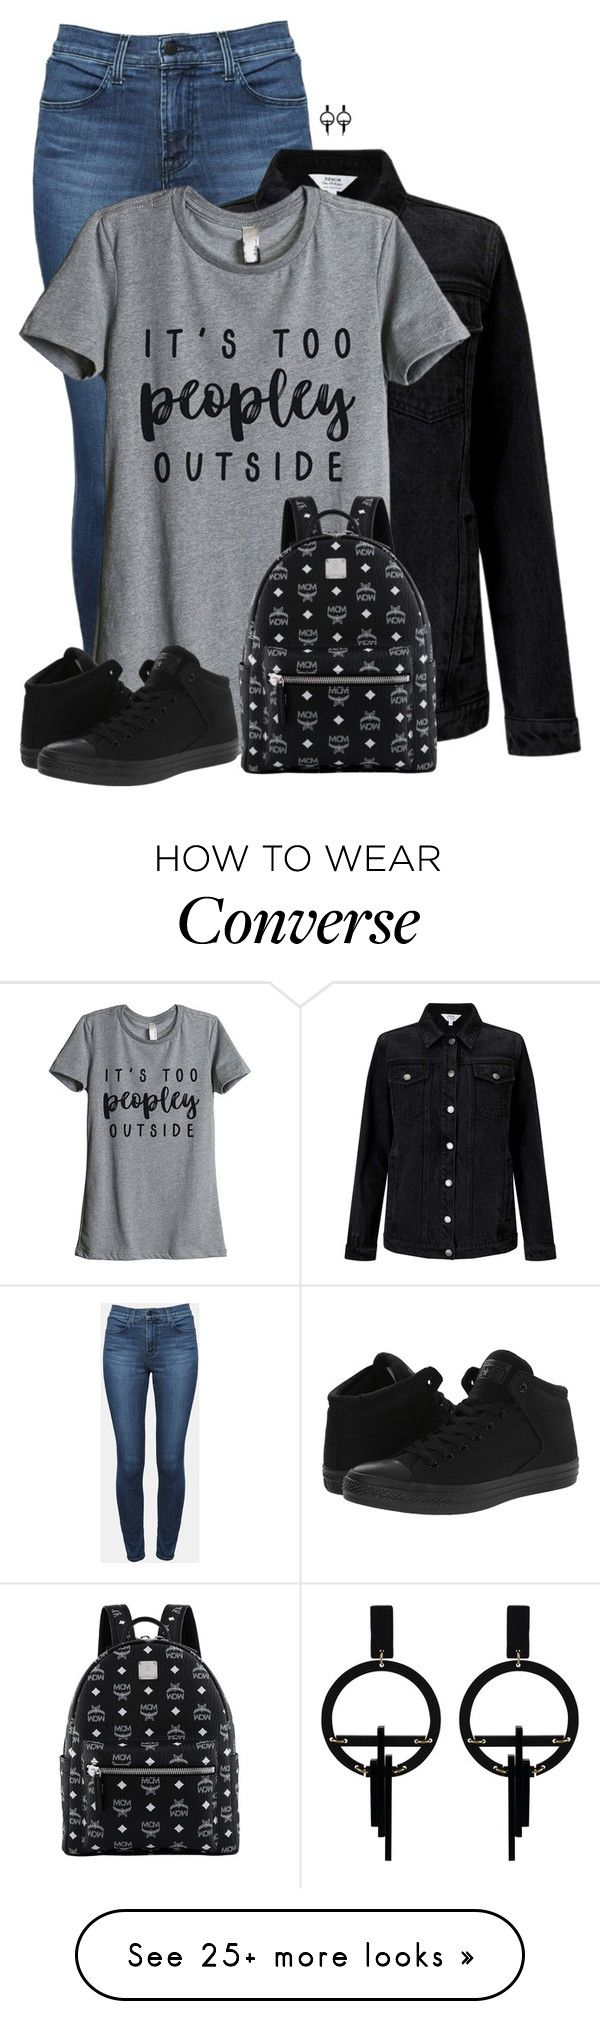 """""""MCM Small Stark Backpack"""" by sherbear1974 on Polyvore featuring Theory, Miss Selfridge, Thread Tank, Converse, MCM and Toolally"""